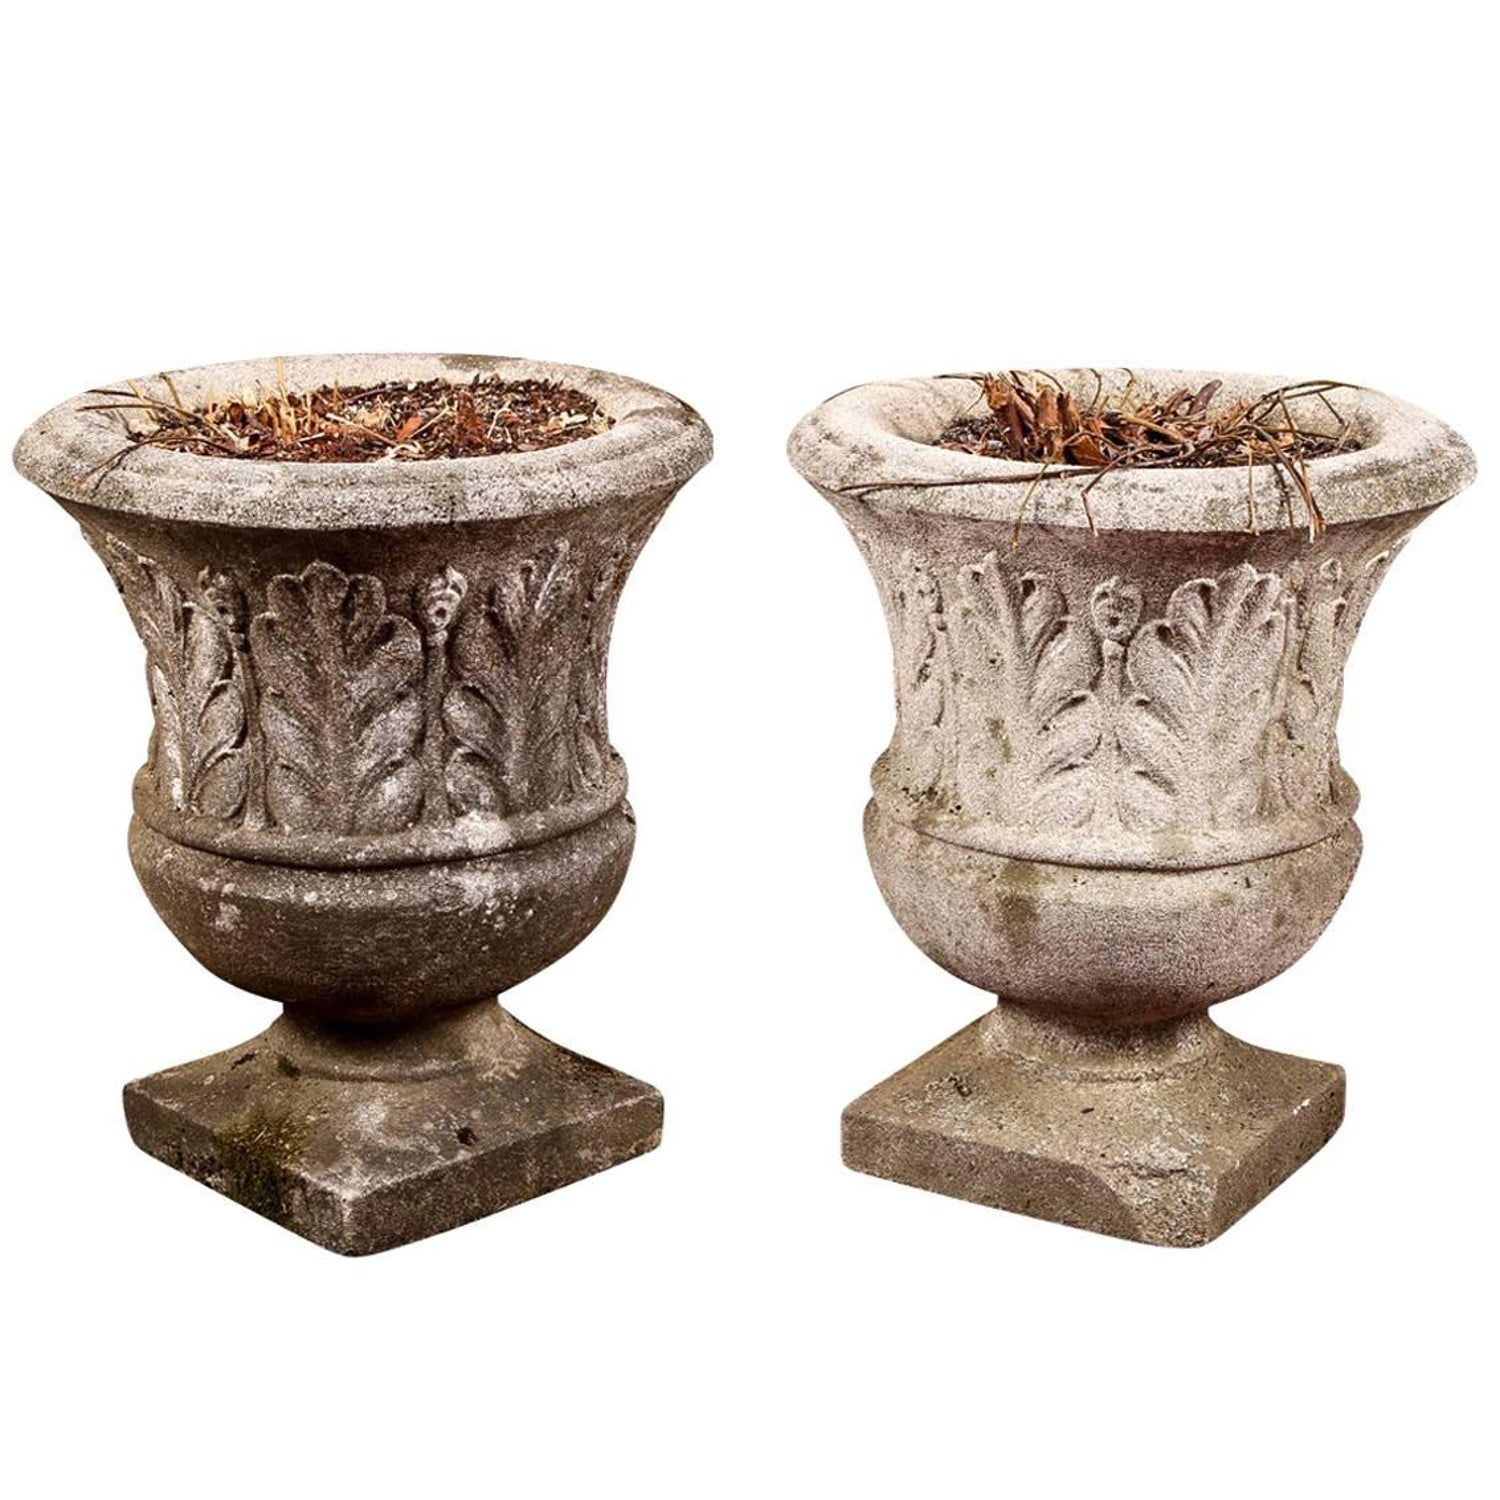 Pair of Older Cement Garden Urns For Sale at 1stdibs